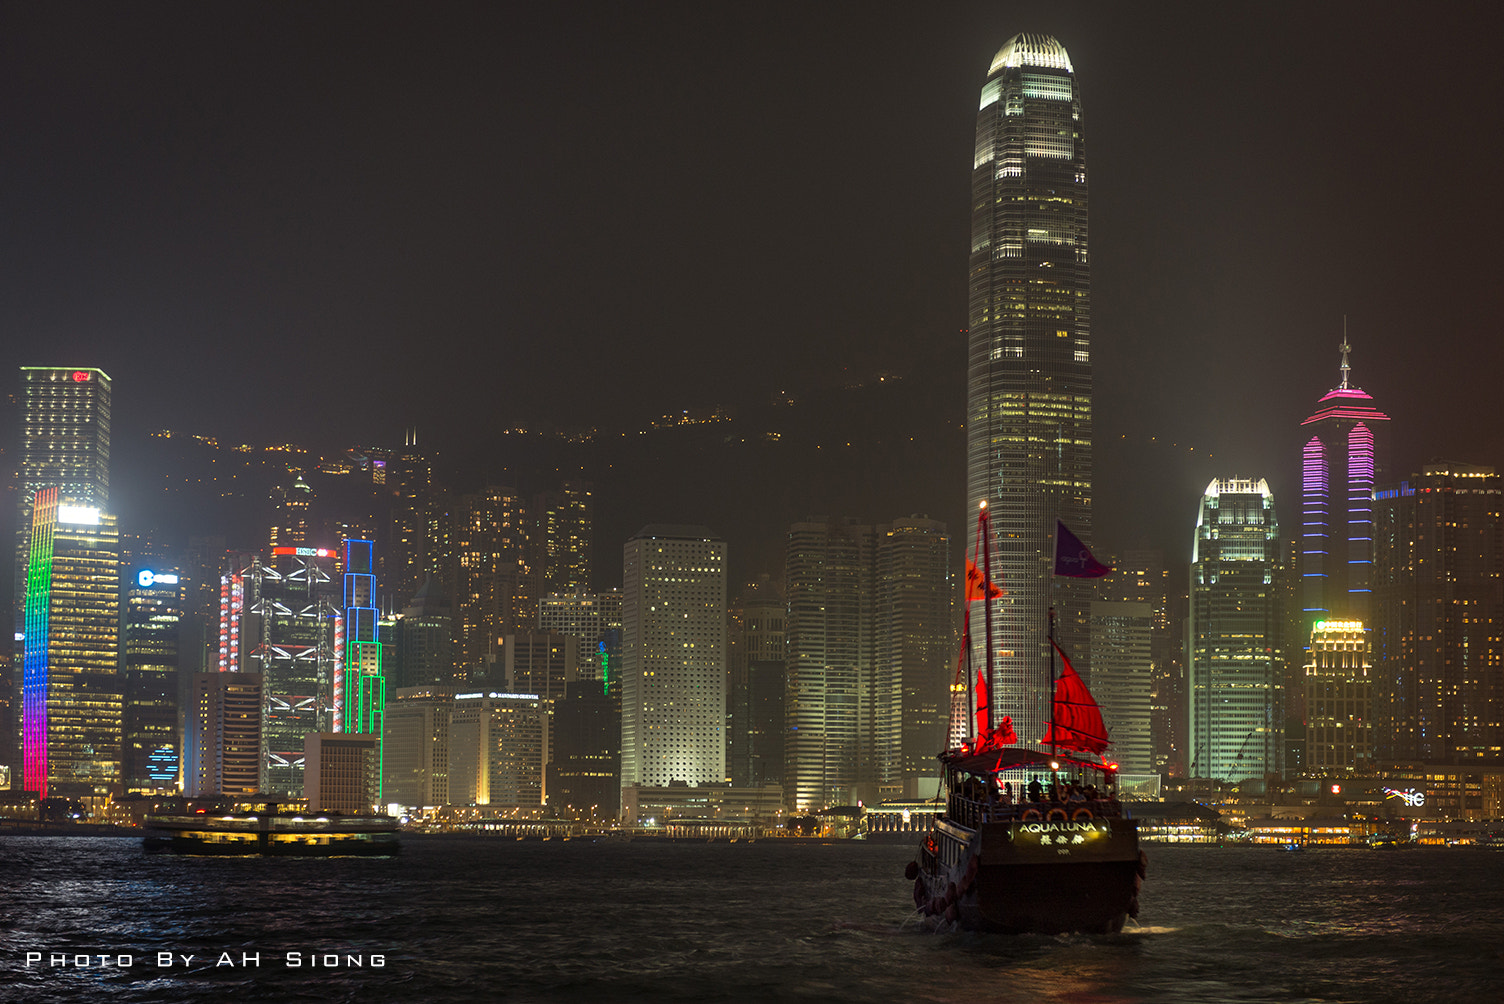 Photograph Victoria Harbour, Hong Kong by Ah Siong on 500px